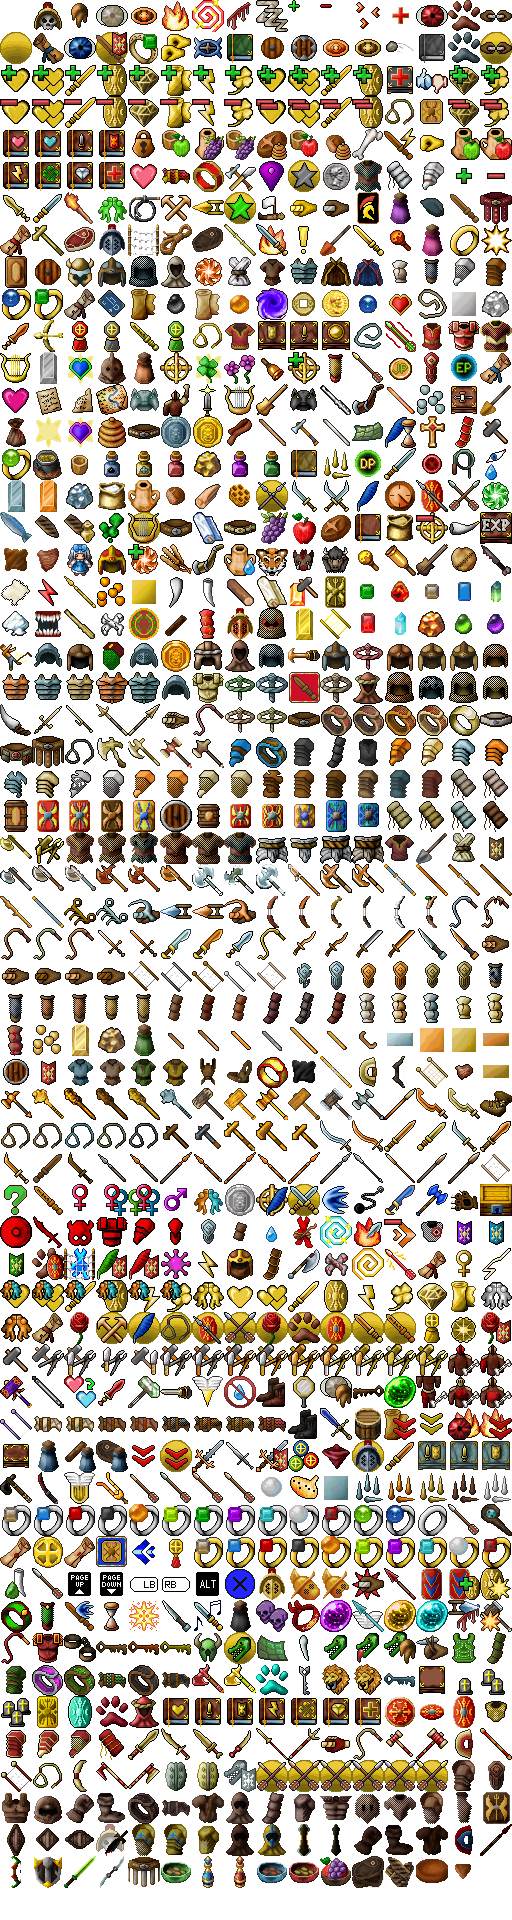 IconSet.png